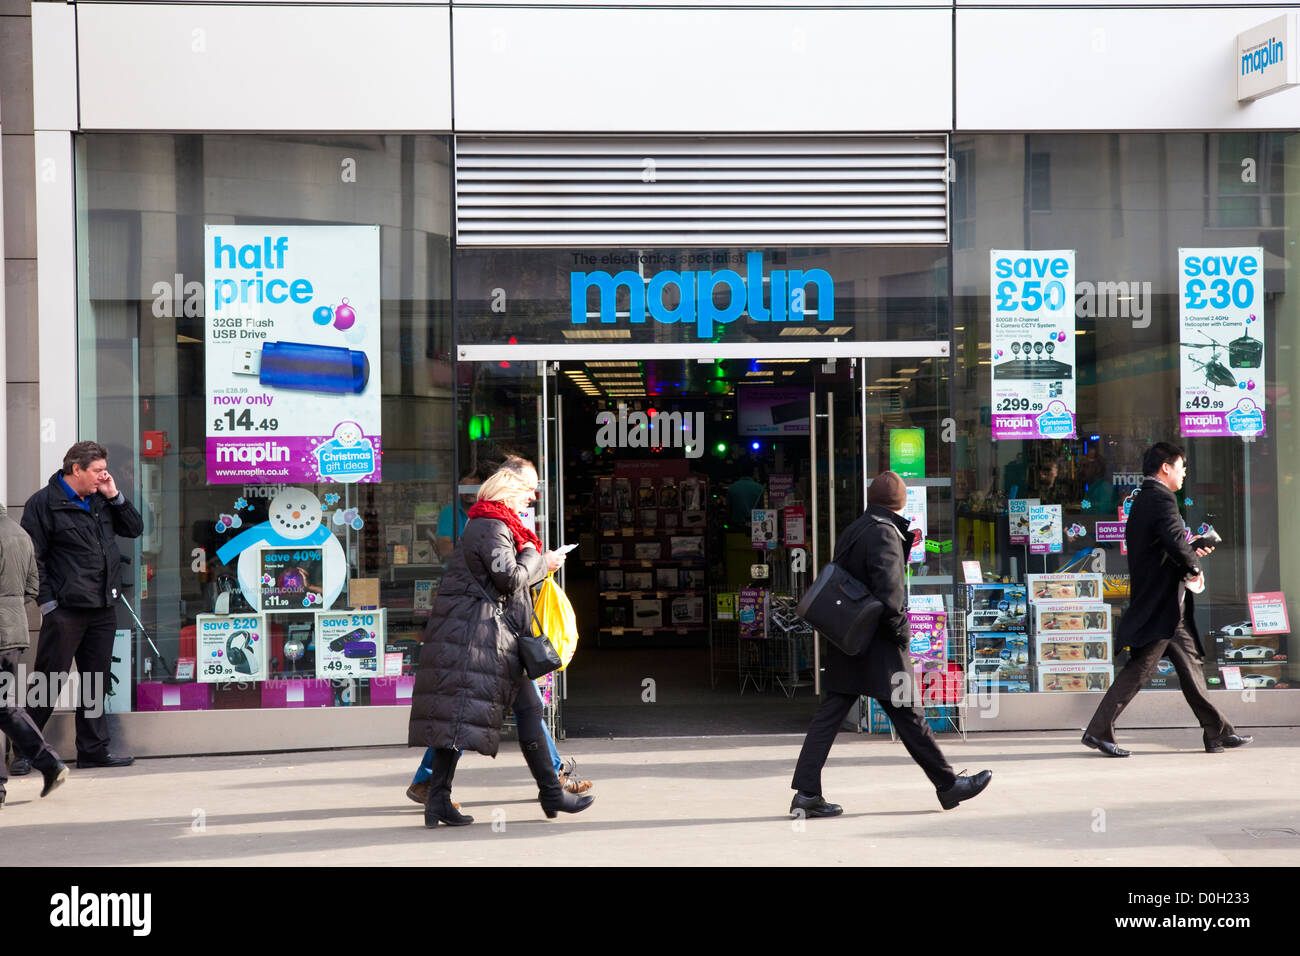 Shop front, Maplin, electrical goods retailer, Cheapside, London, UK - Stock Image